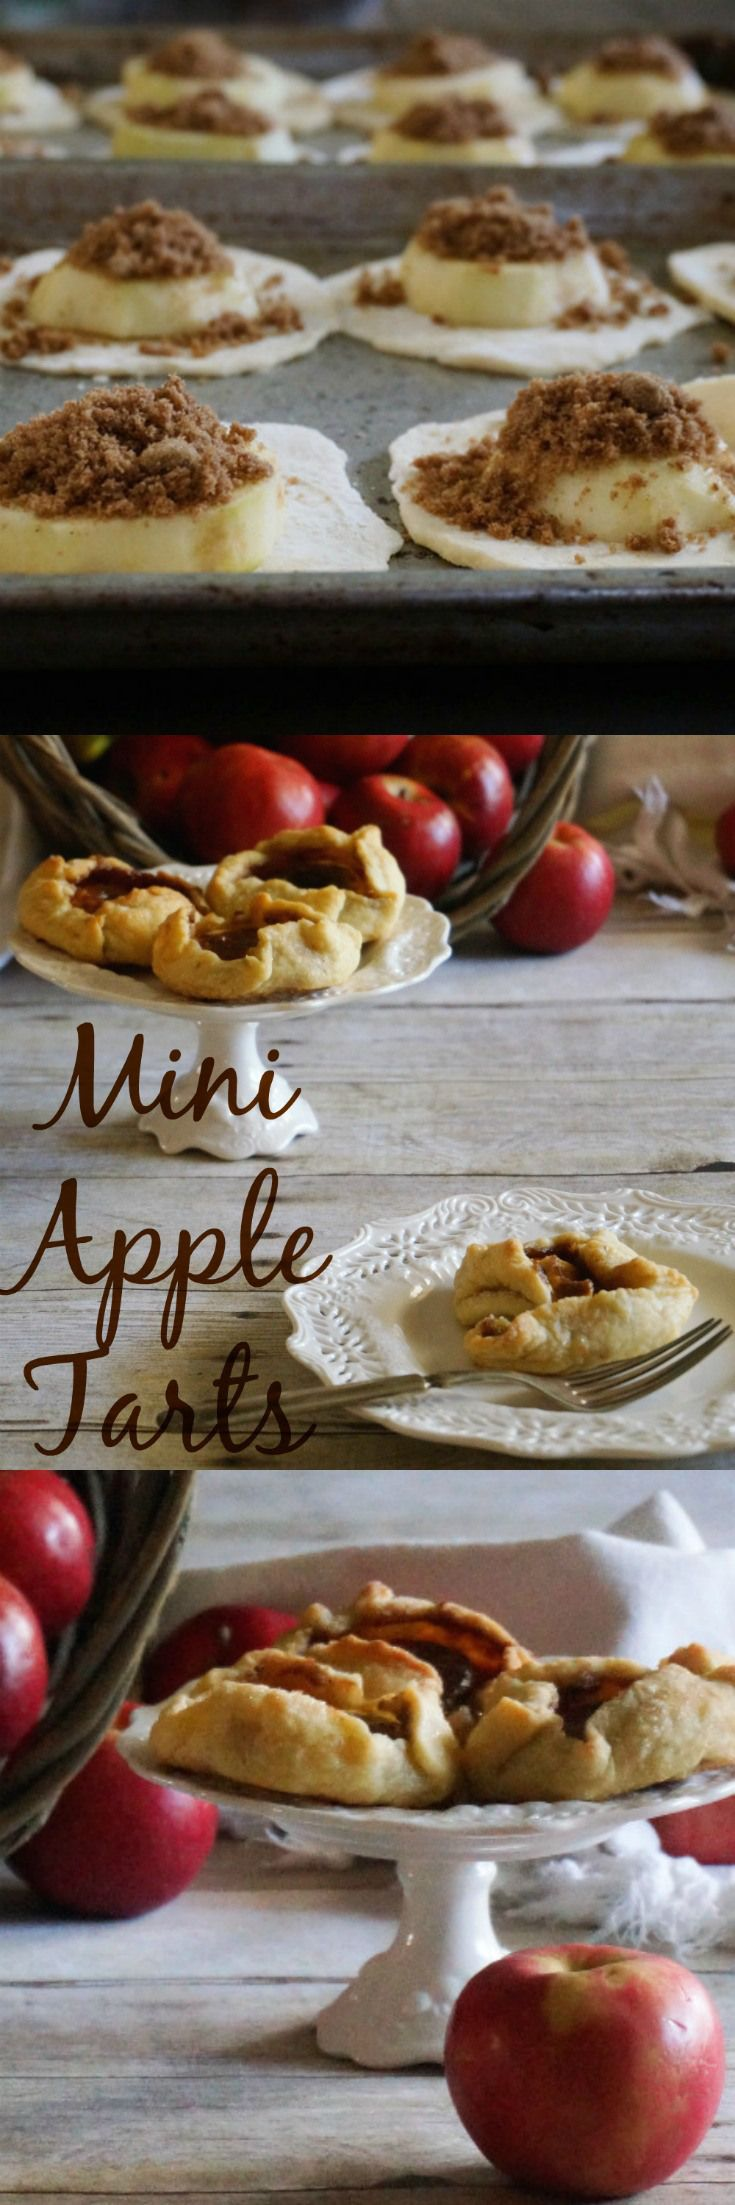 Tender buttery pastry crust, cinnamon and brown sugar soaked apples, all baked into mini tarts that will fit in the palm of your hand.